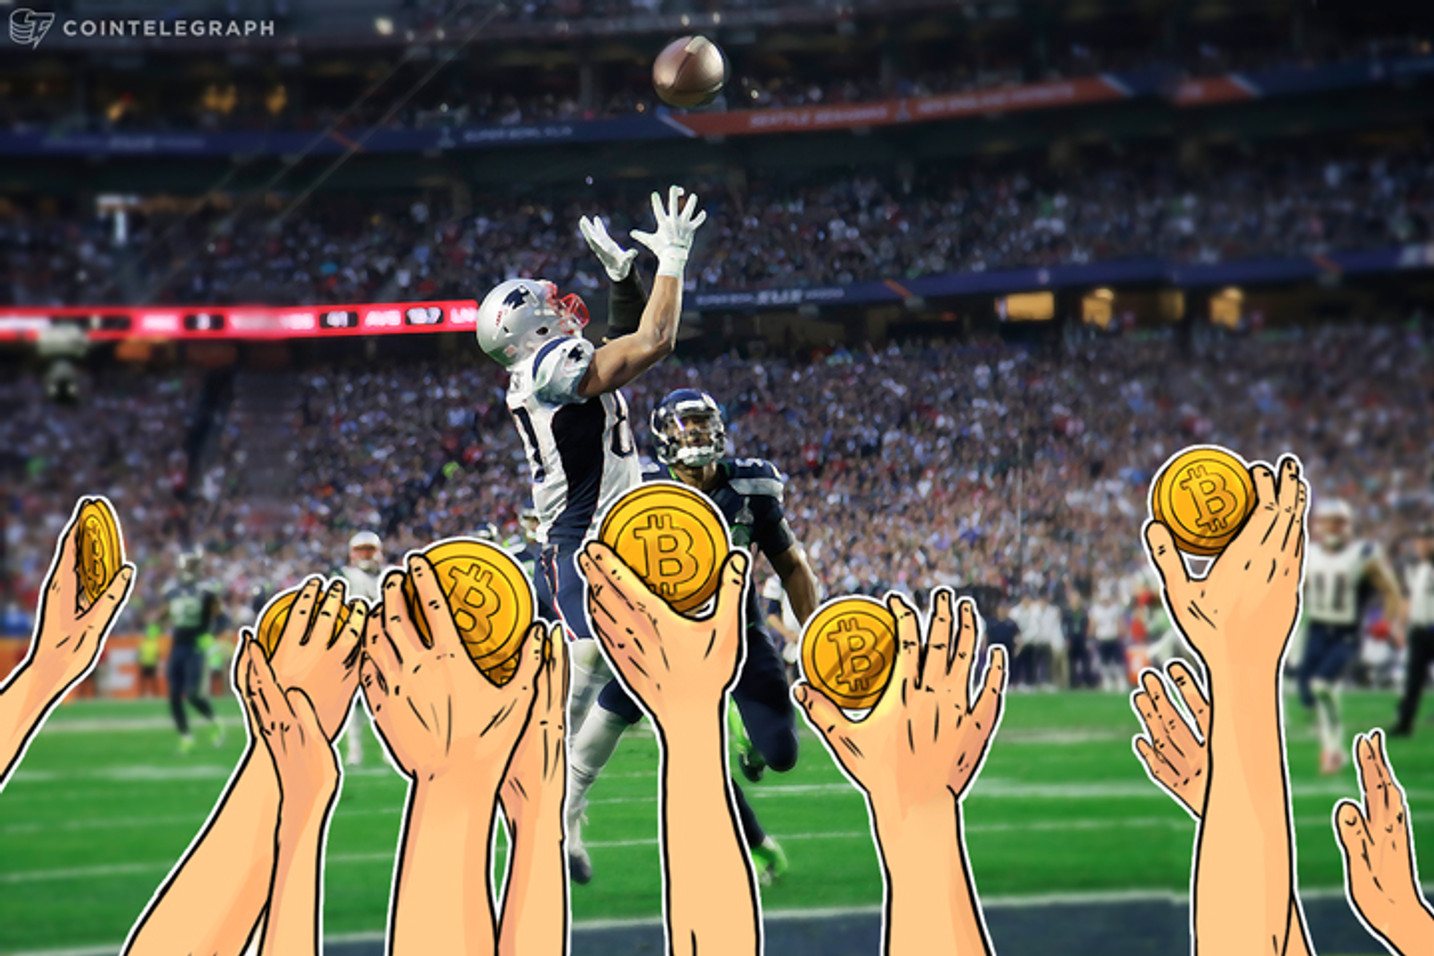 Bitcoin Buzz in NFL Playoffs